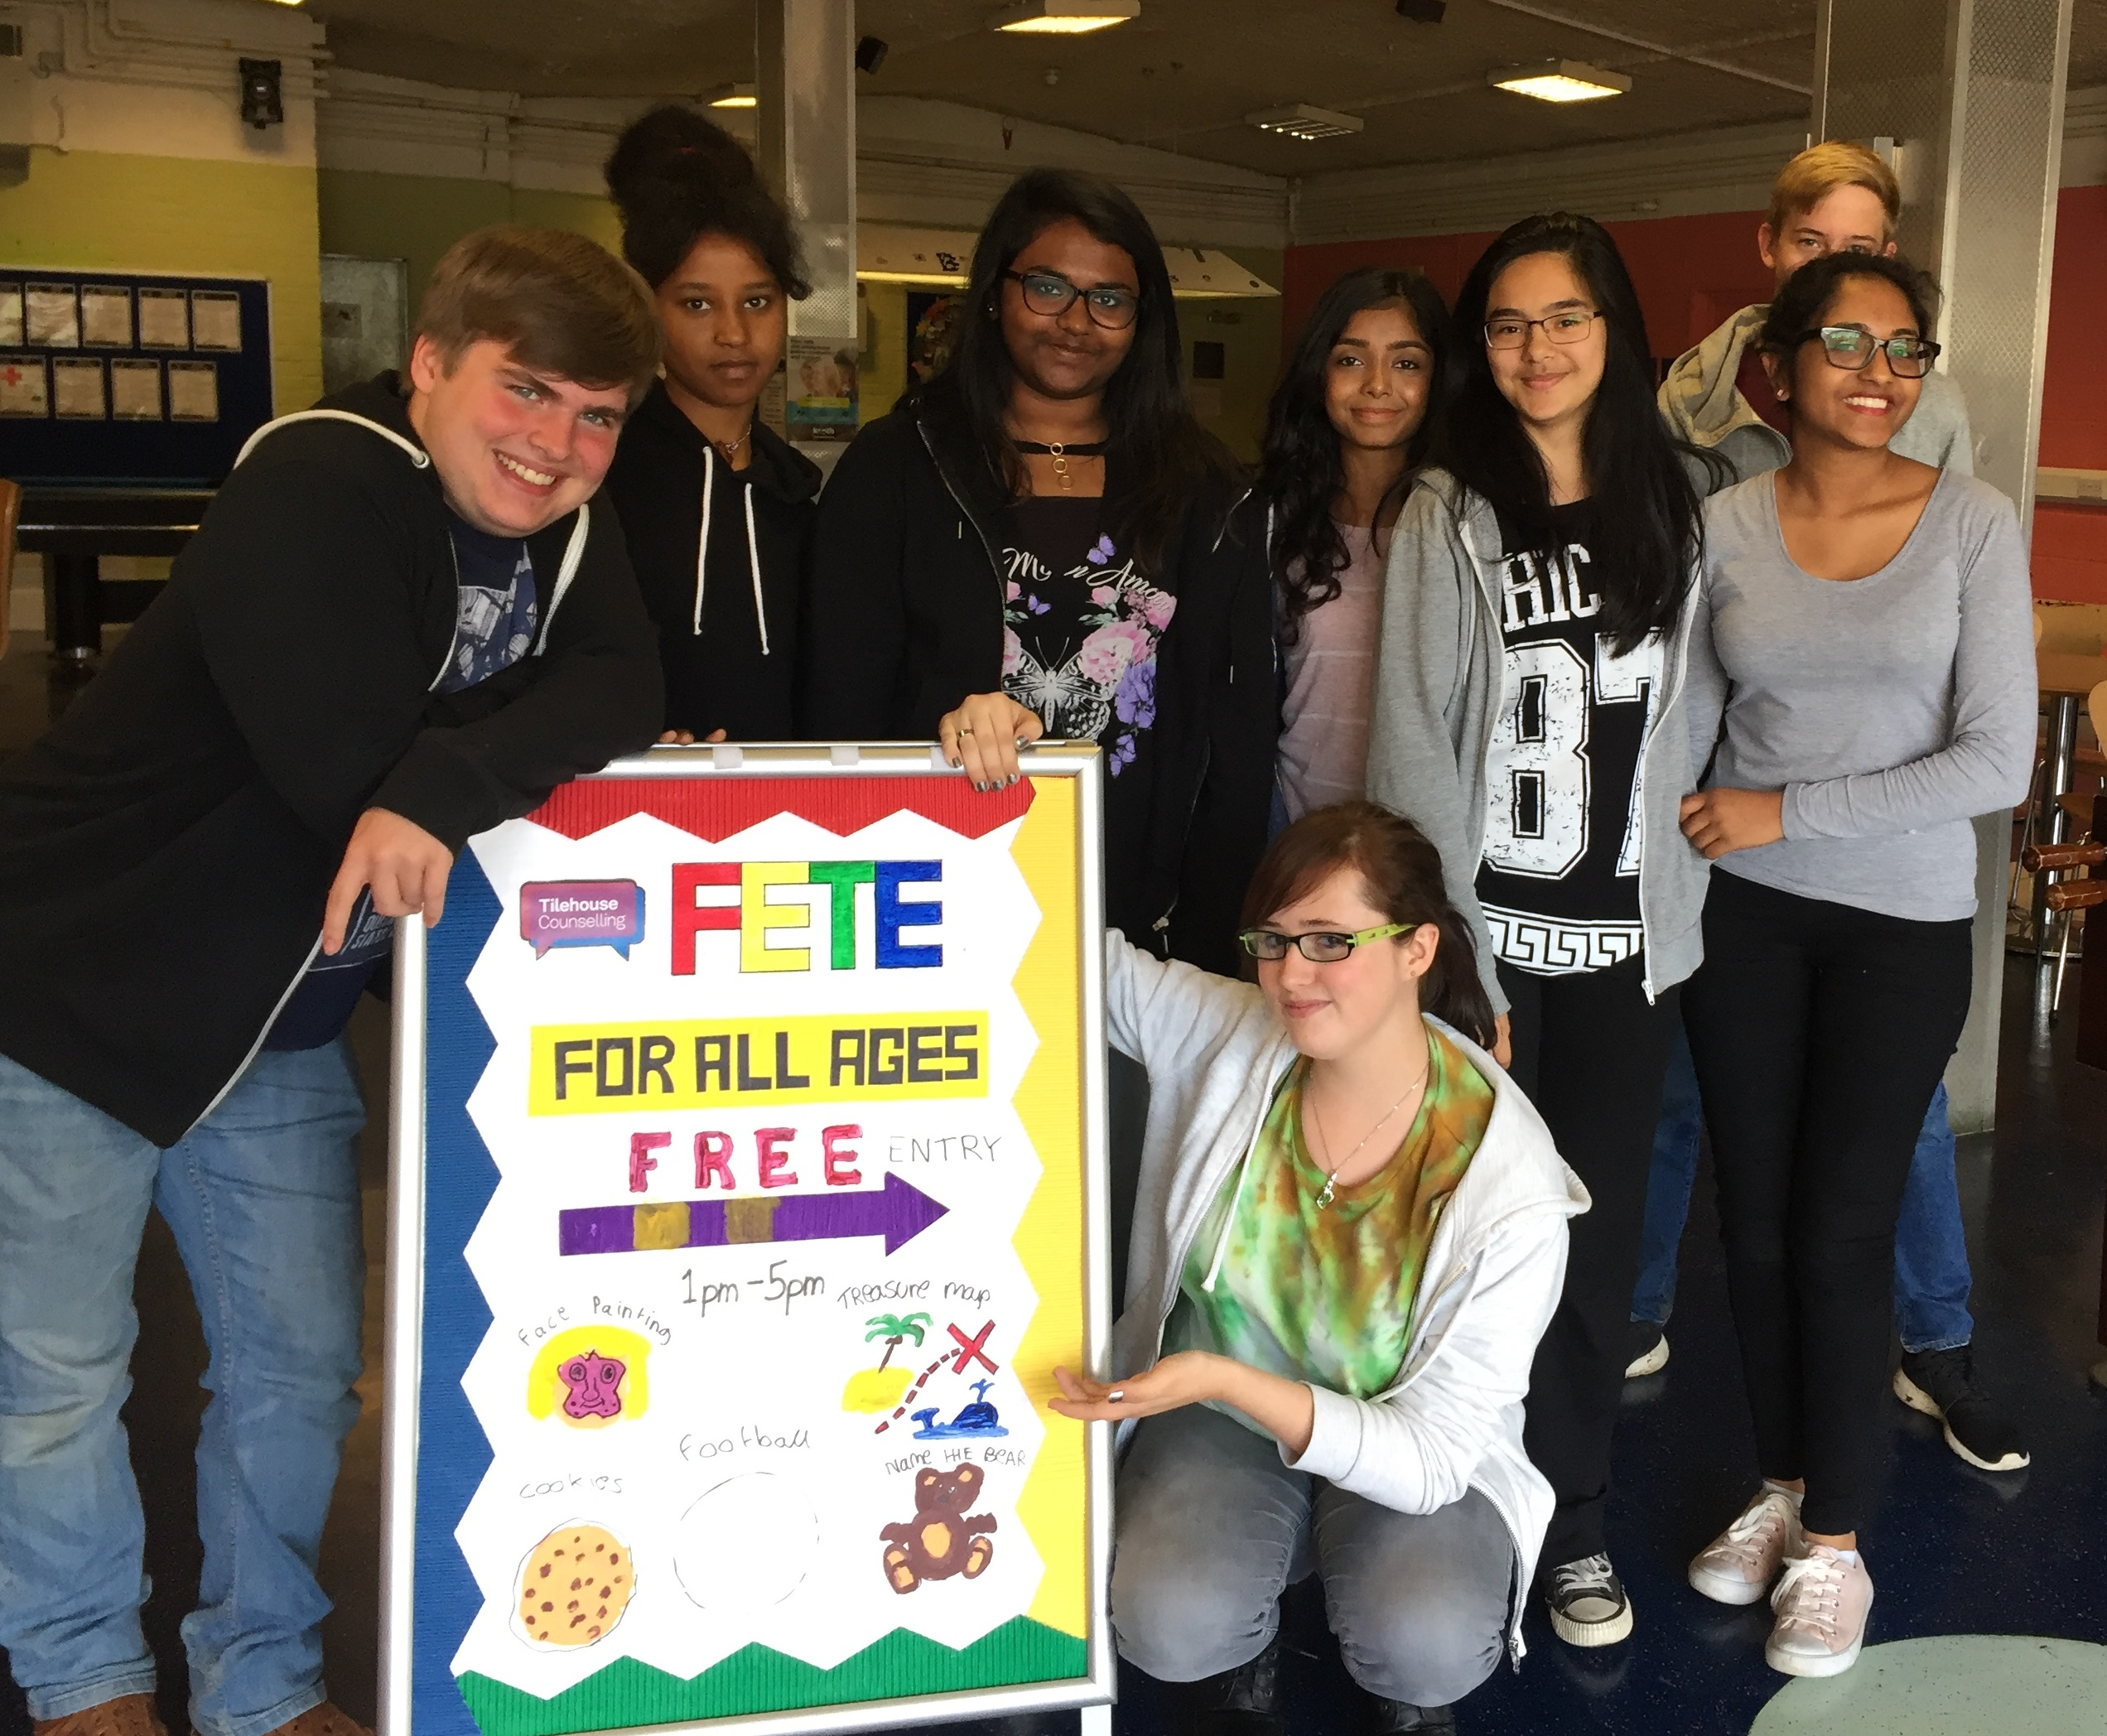 Young people from Stevenage demonstrate their community spirit during their summer holidays